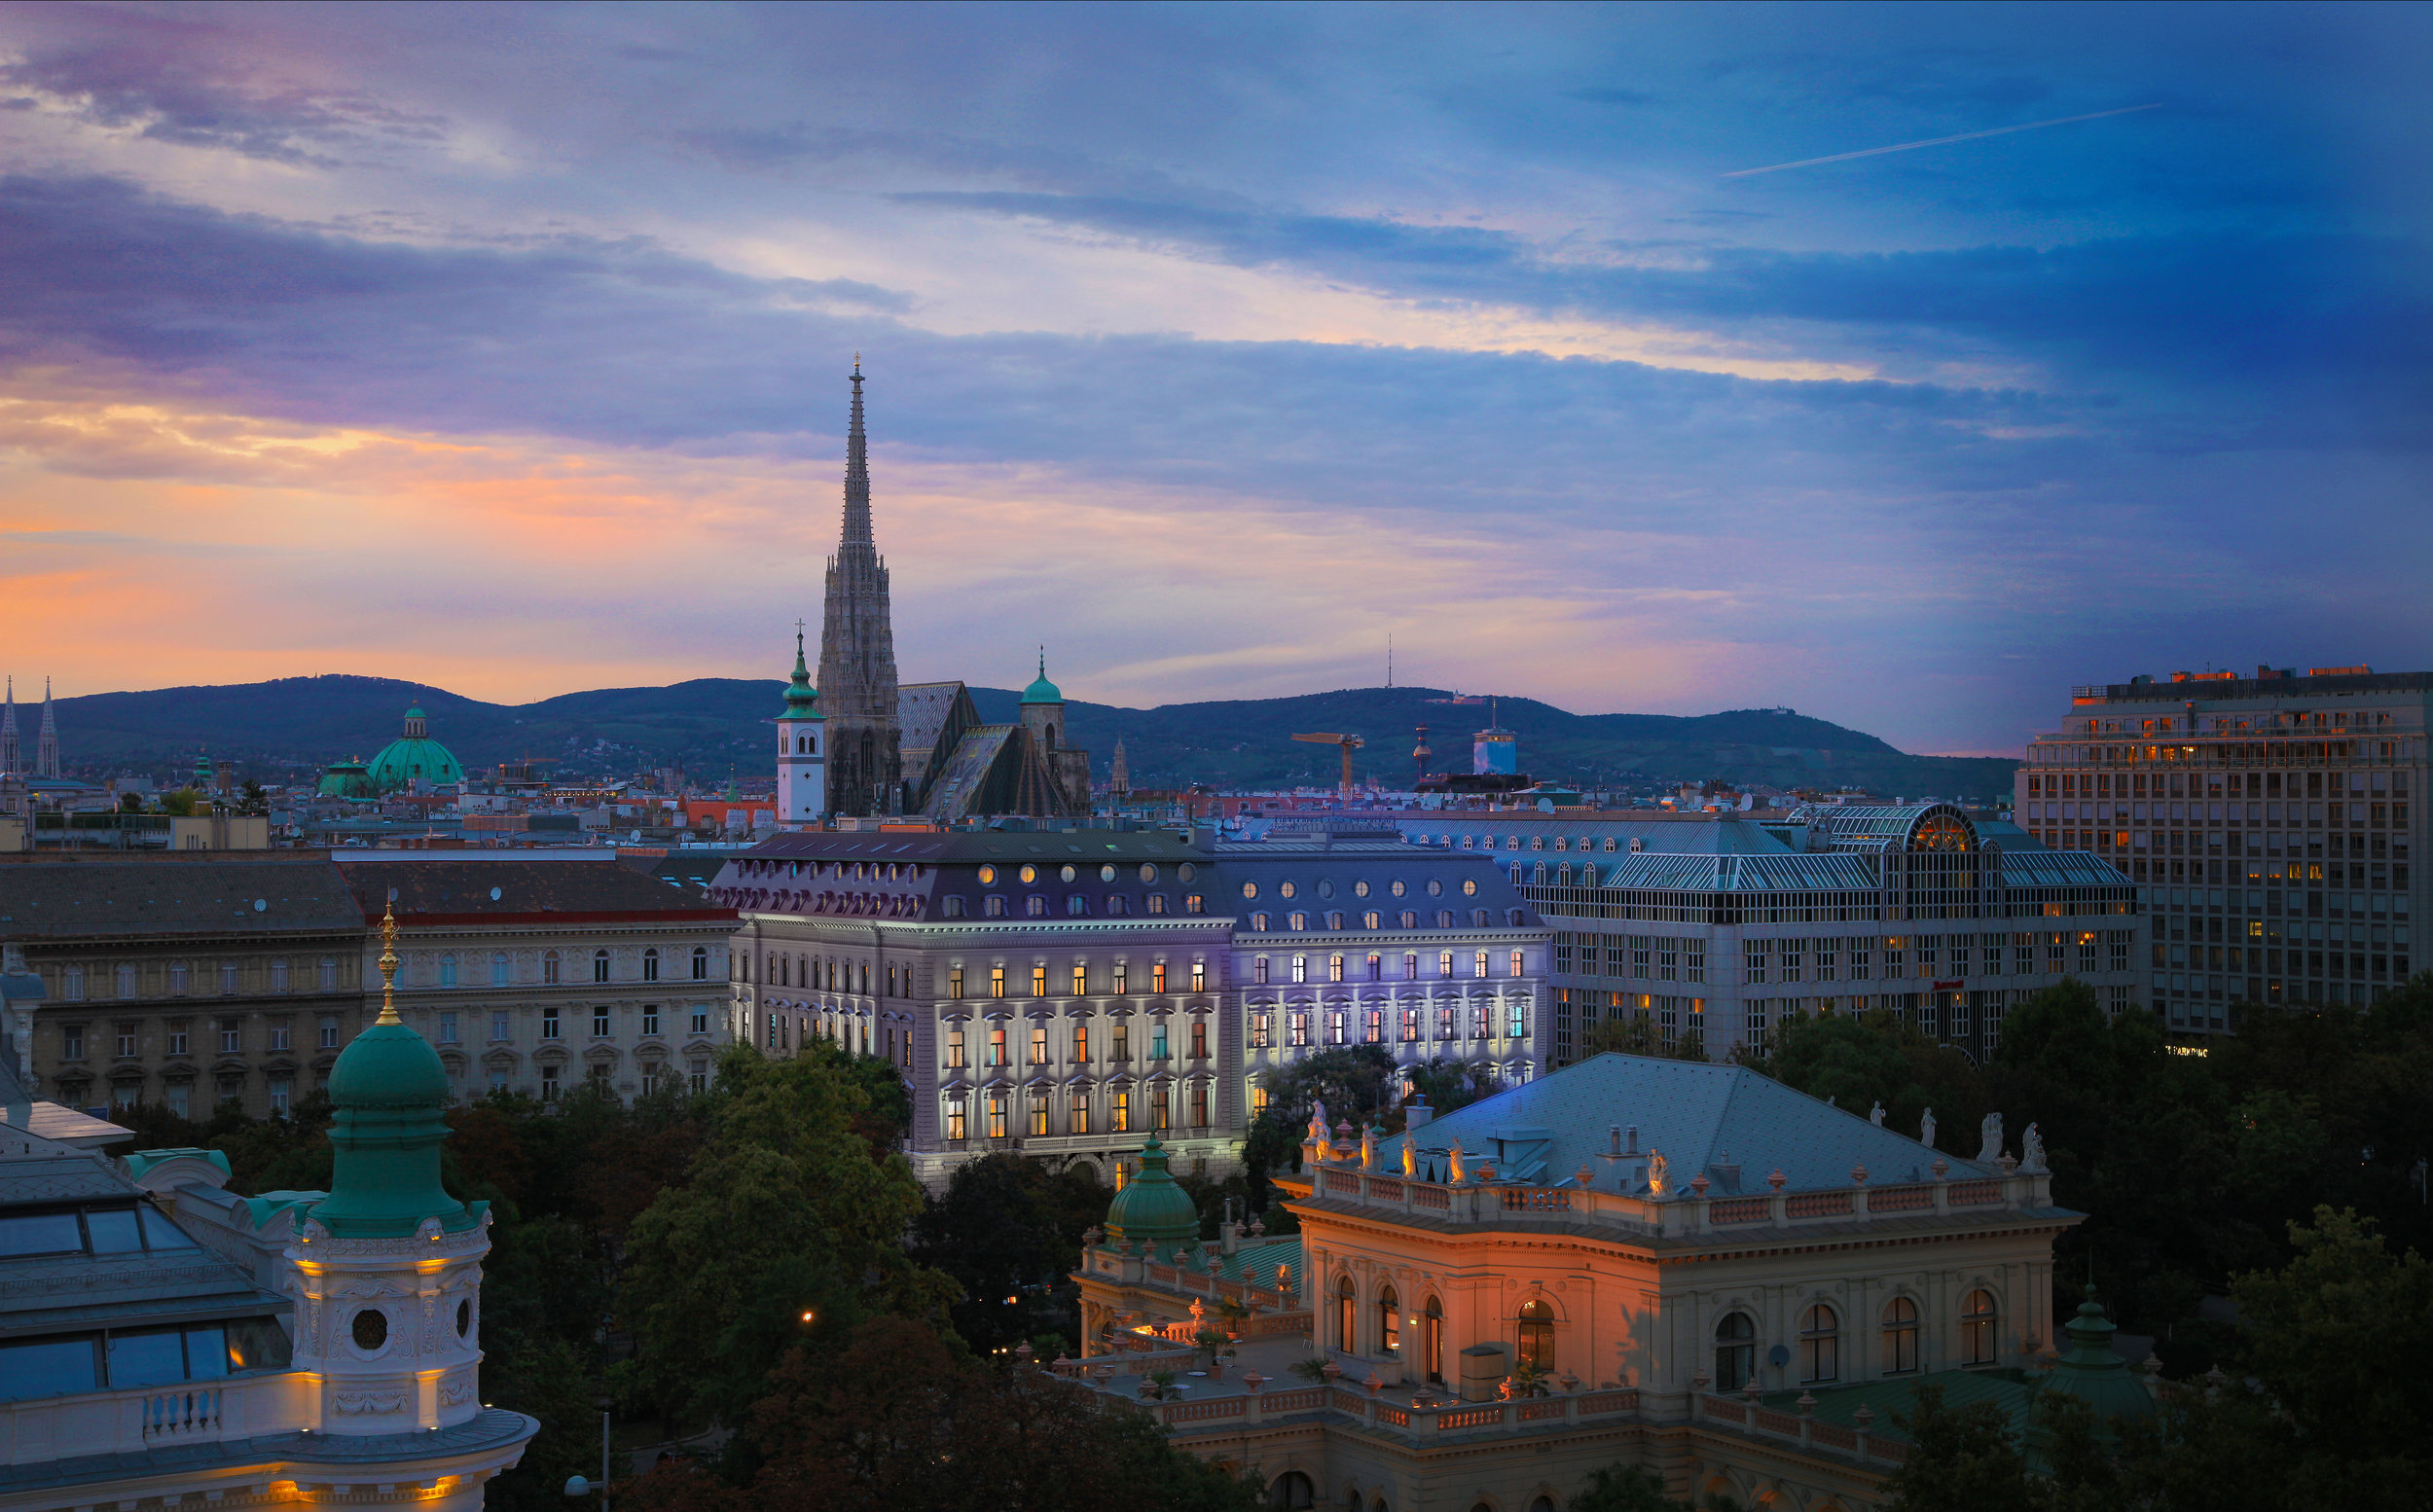 Set in this historic center of Vienna